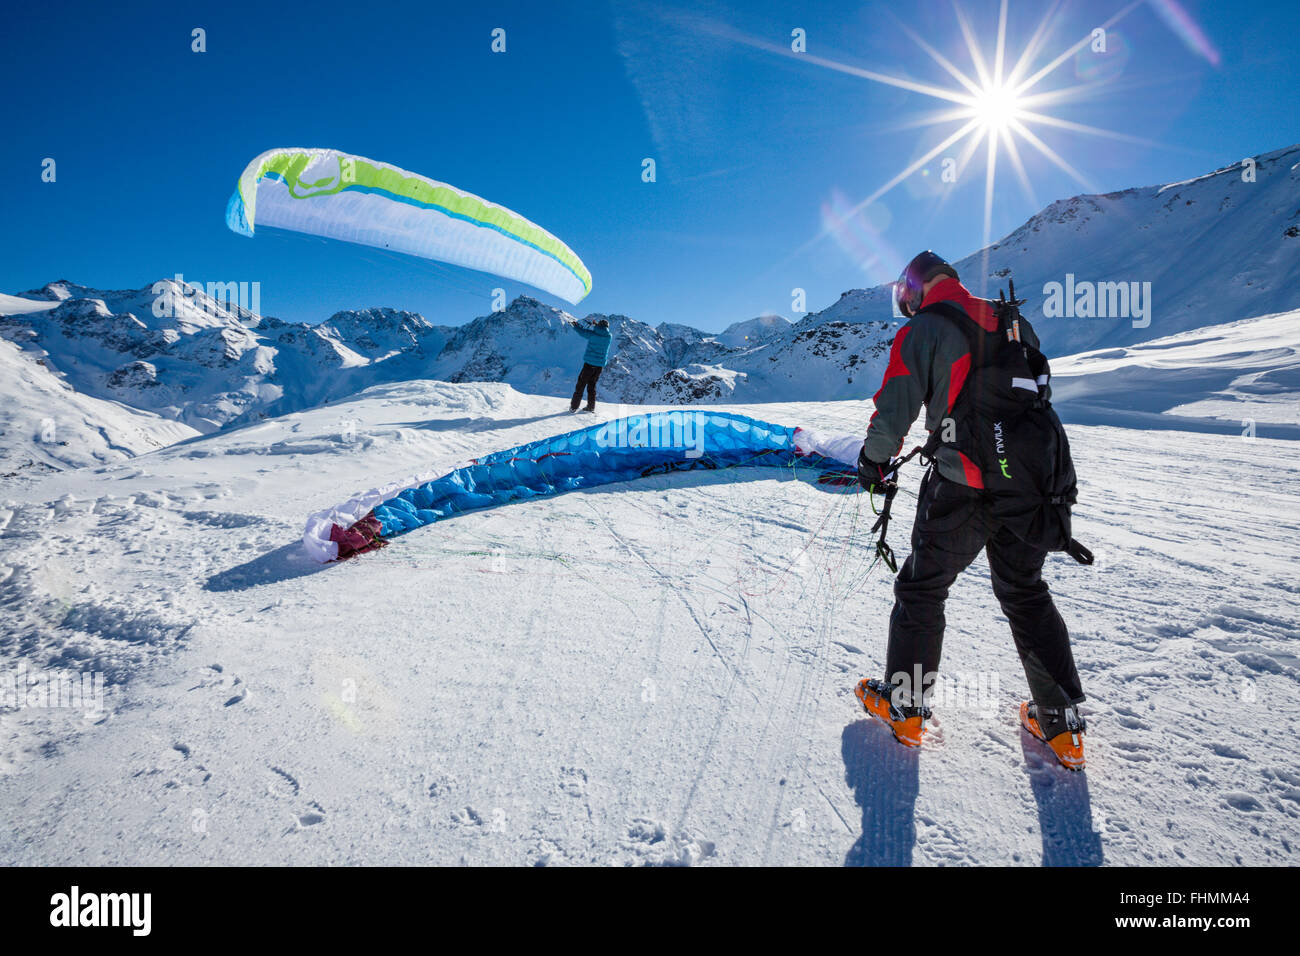 Groundhandling with the Paraglider, Sulden Skiing Area, South Tyrol, Italy Stock Photo